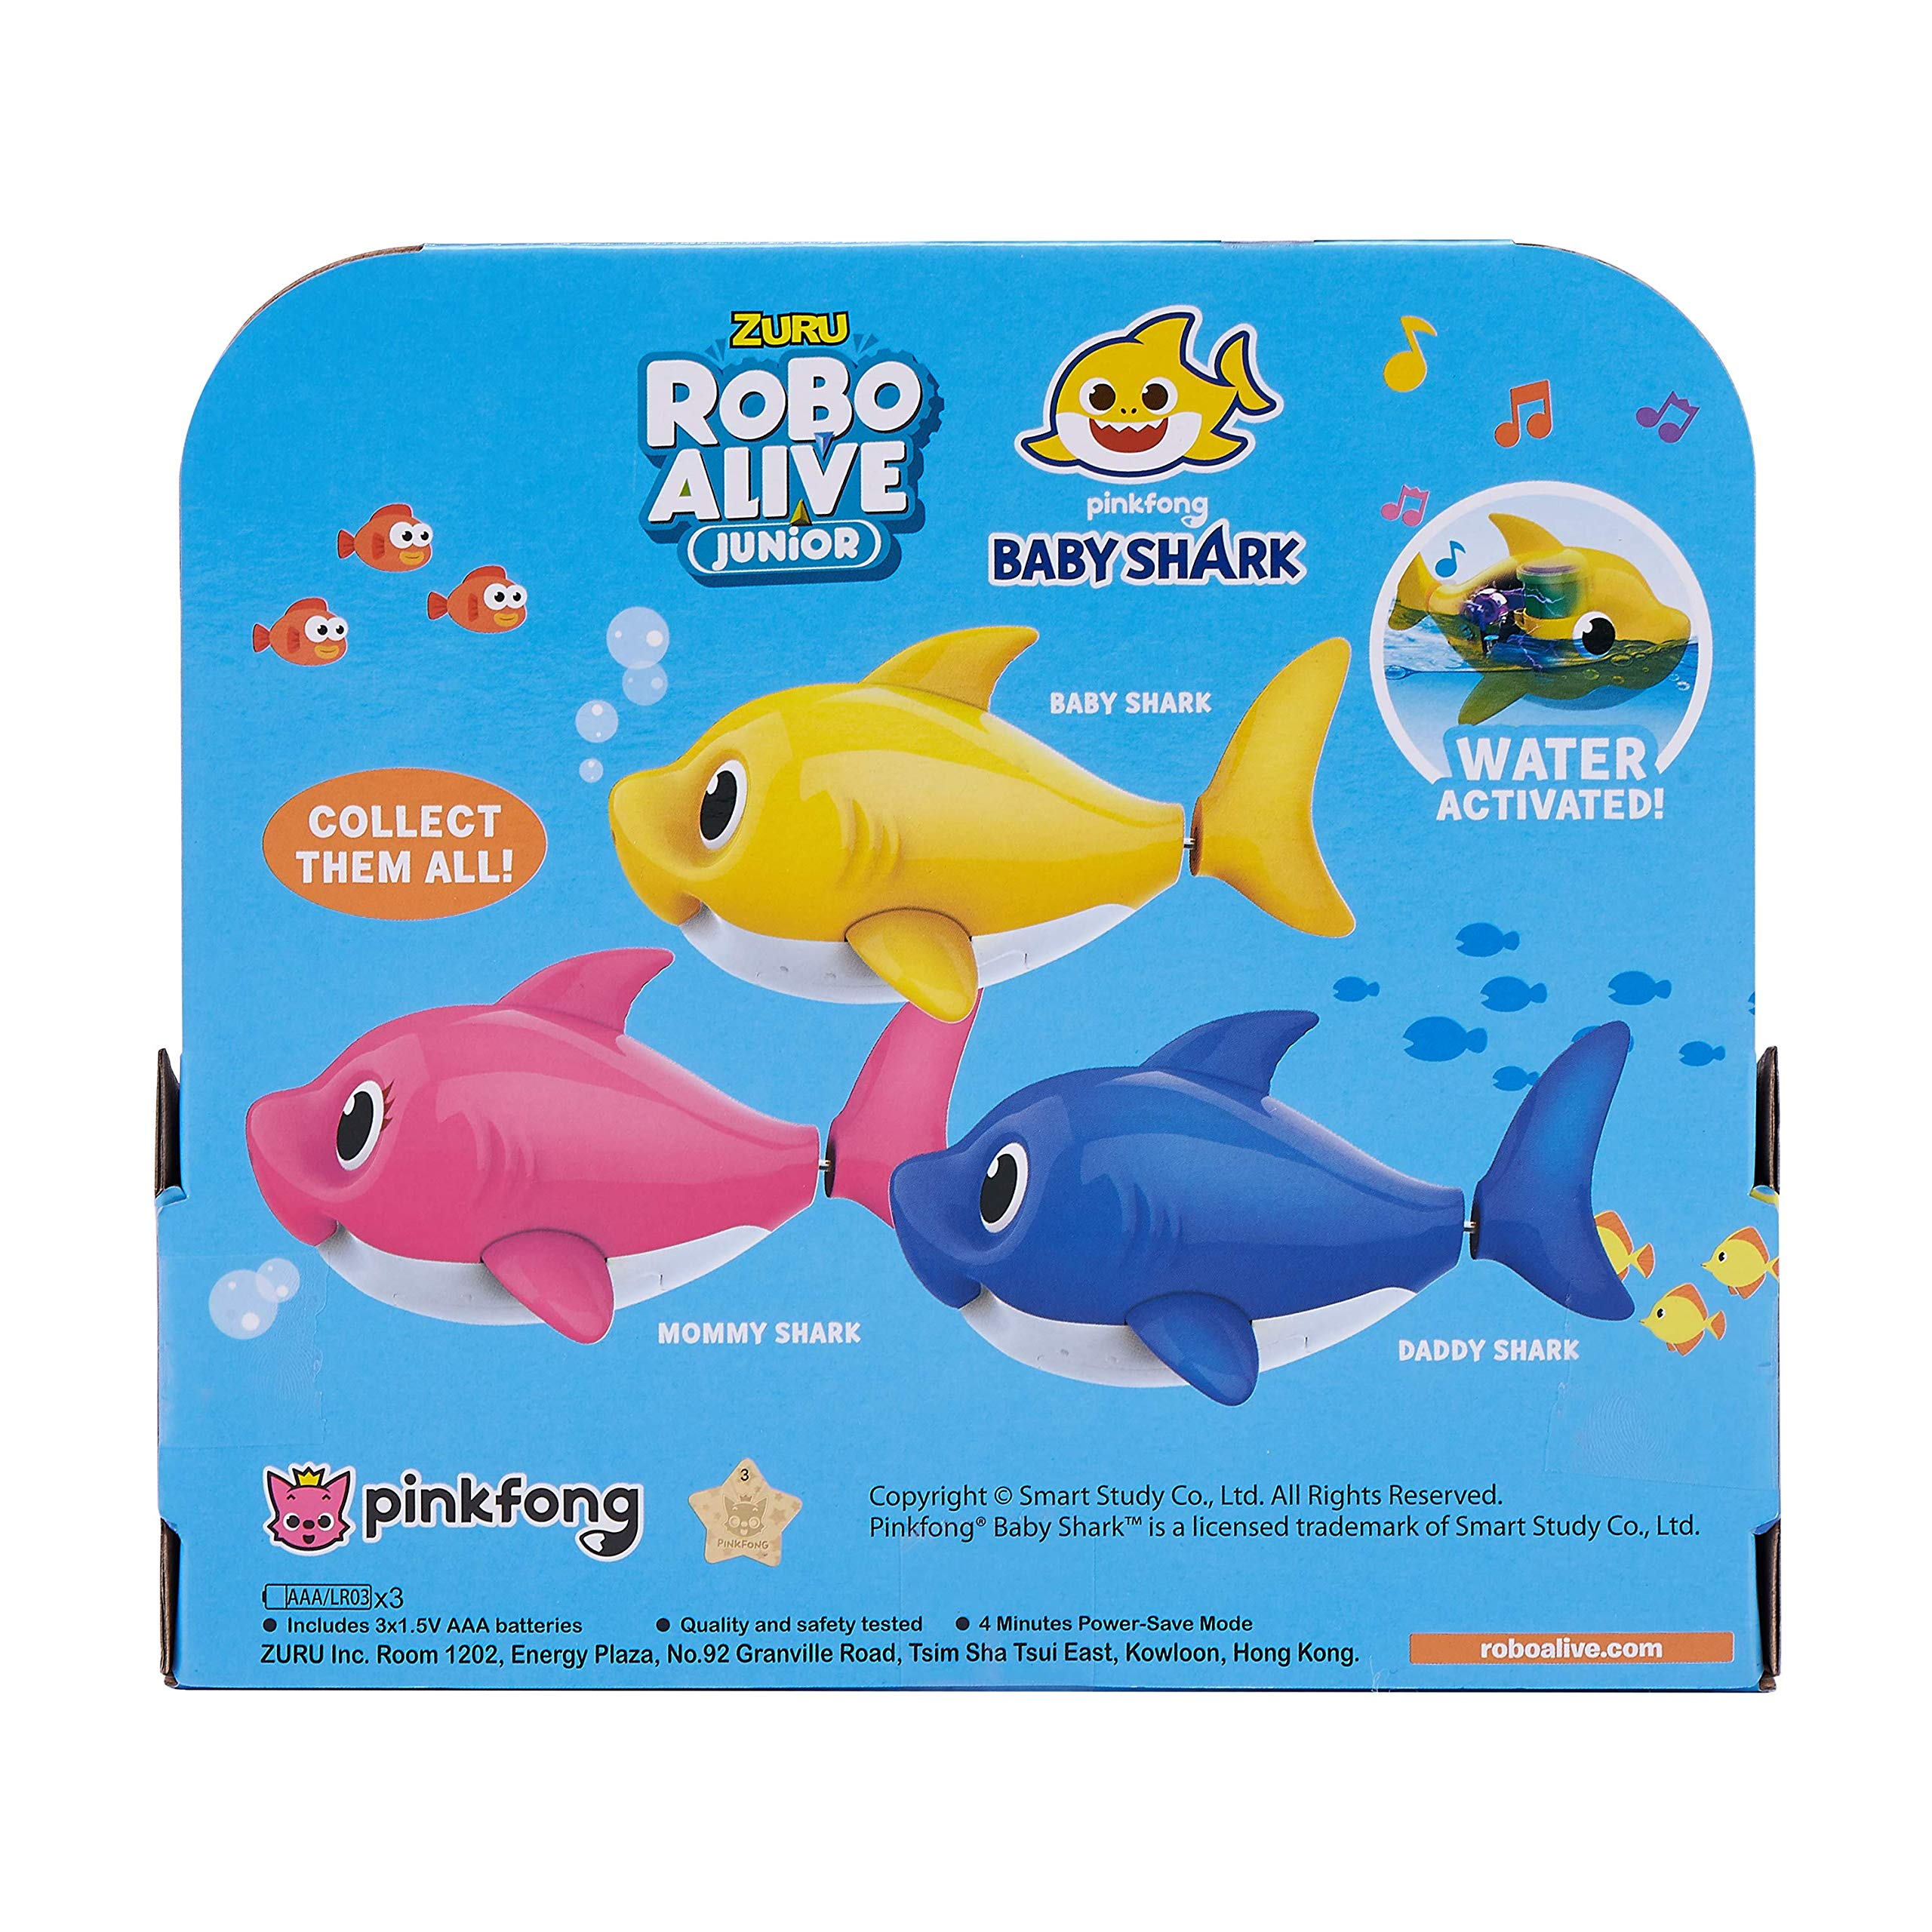 Robo Alive Junior Baby Shark Battery-Powered Sing and Swim Bath Toy by ZURU - Baby Shark (Yellow) by Robo Alive Junior (Image #5)